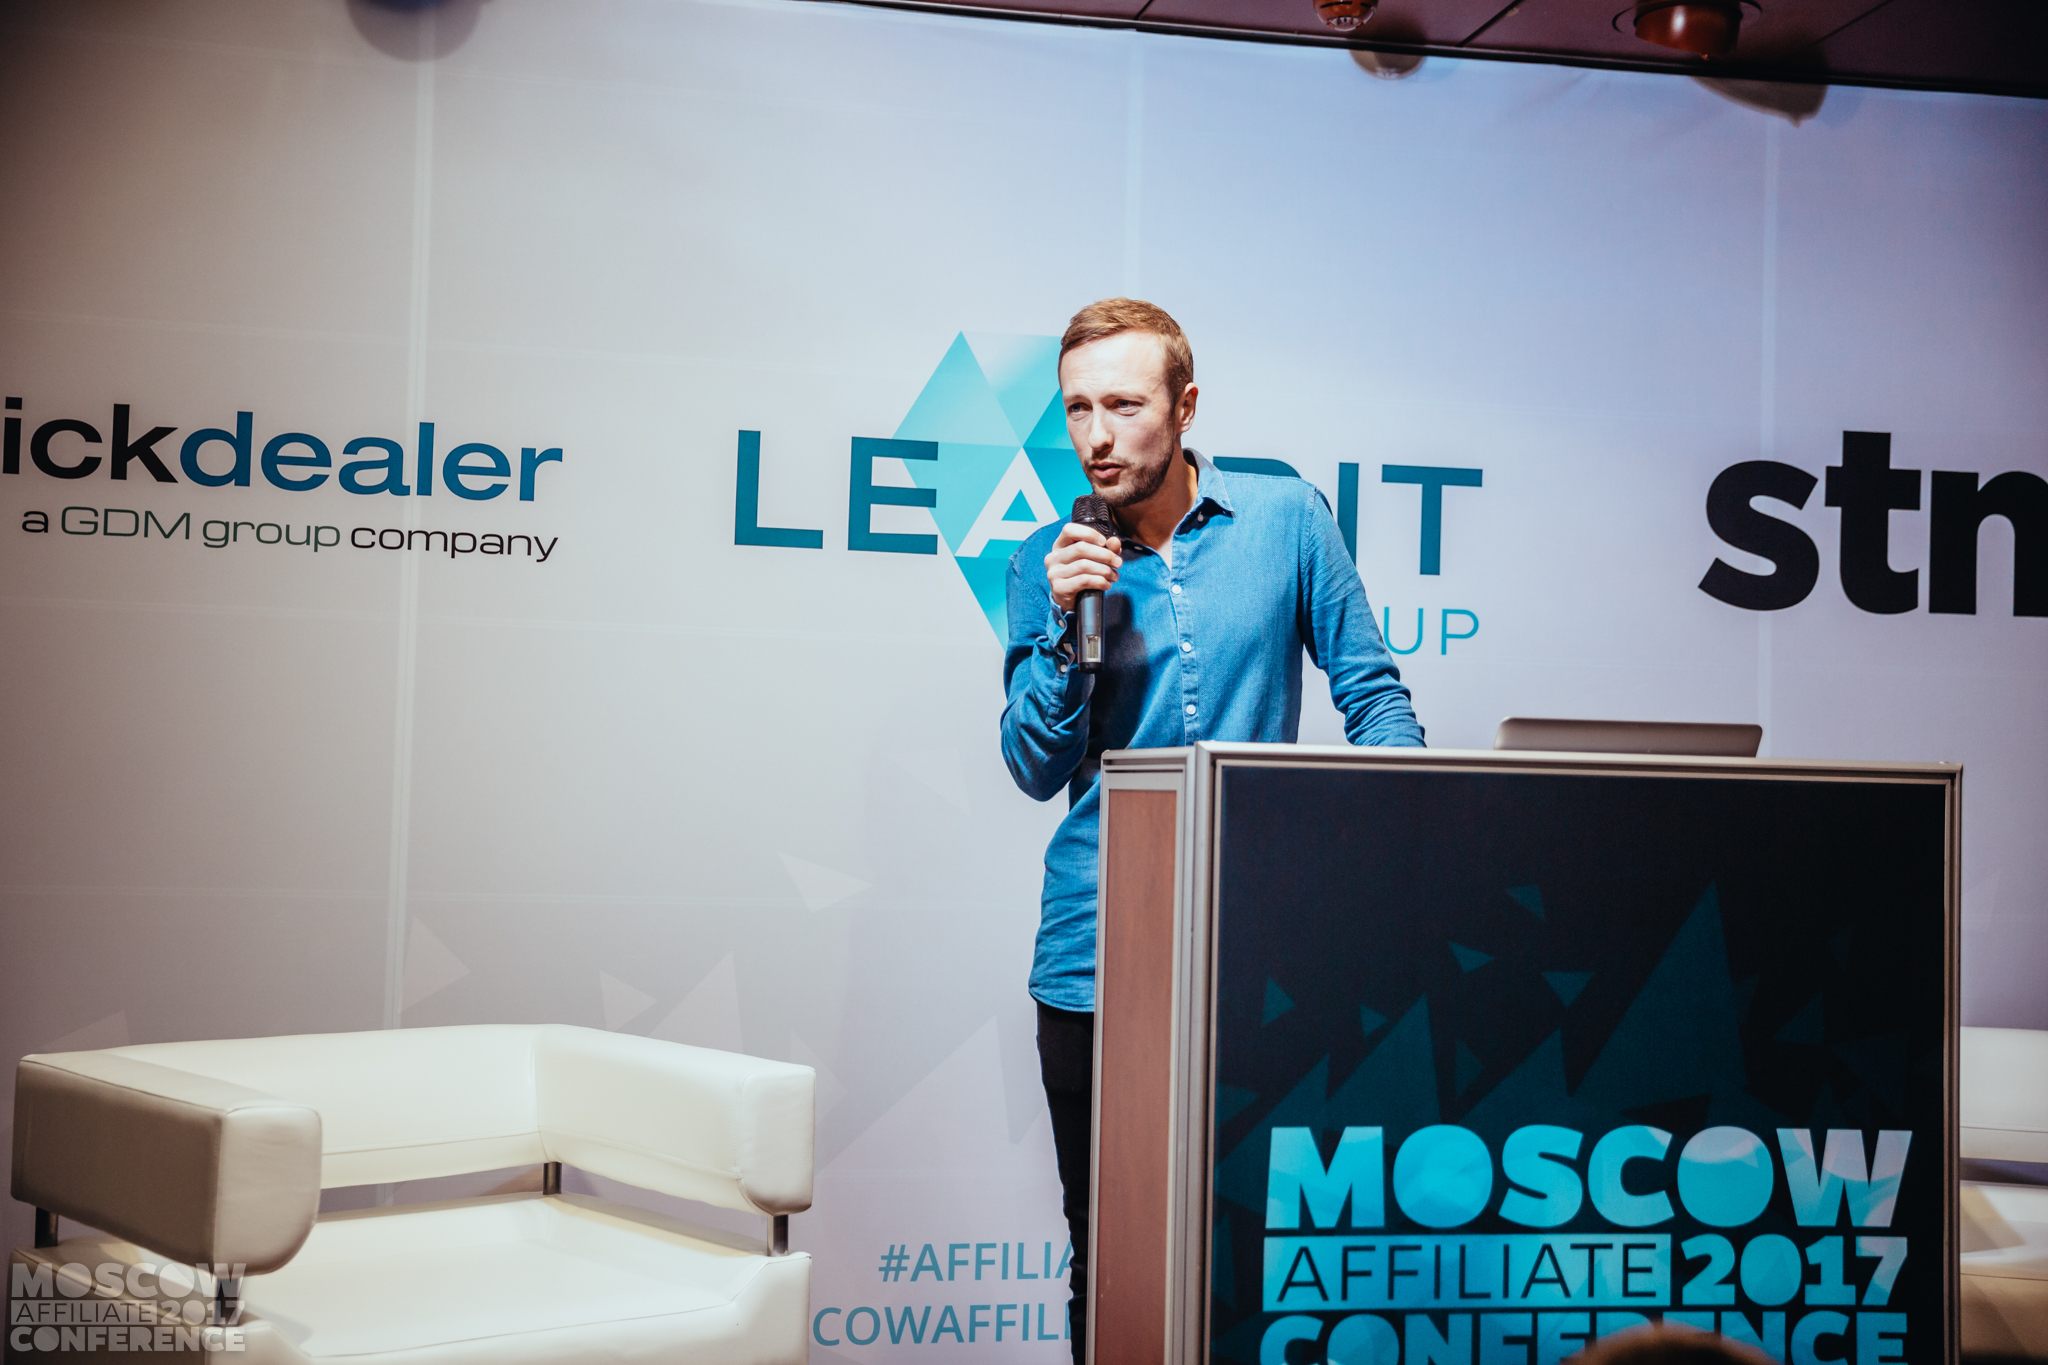 Moscow Affiliate Conference-1